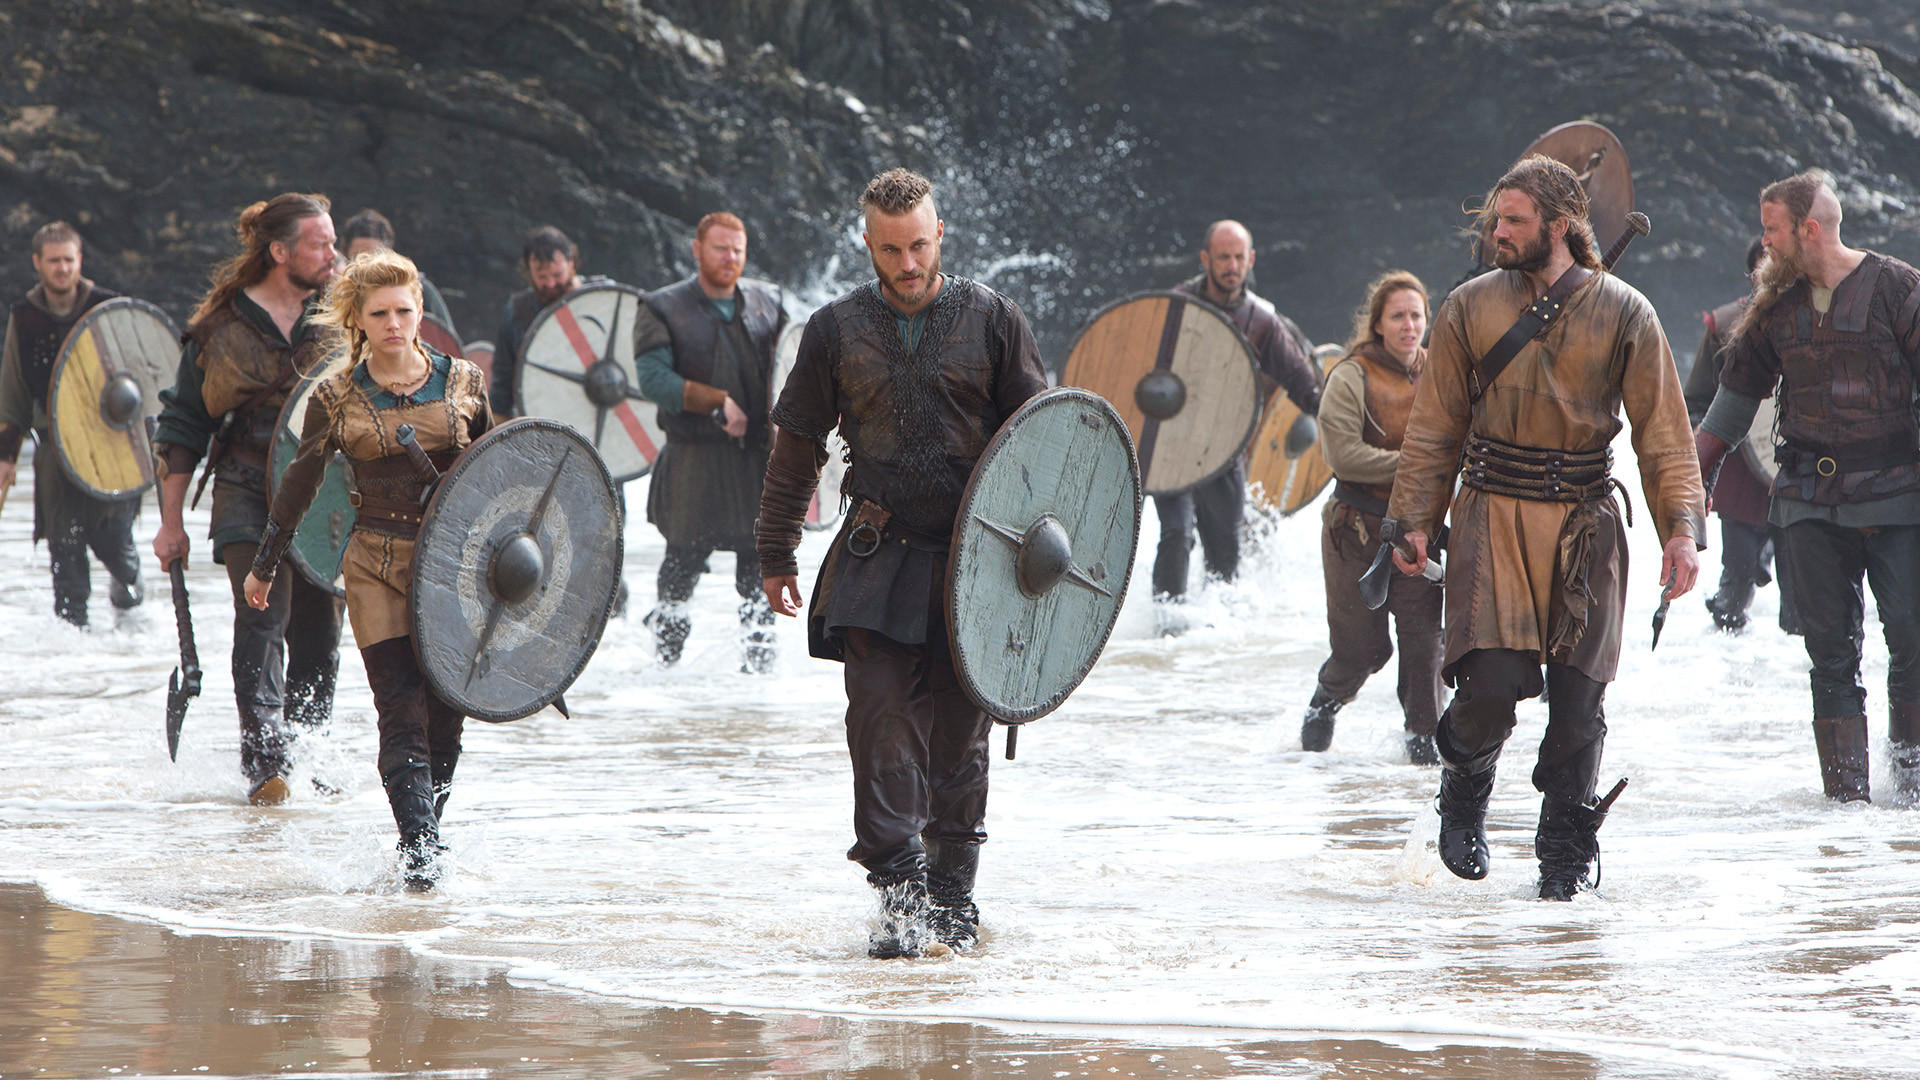 Vikings 2017 return premiere release date & schedule & air dates of your  favorite tv shows.